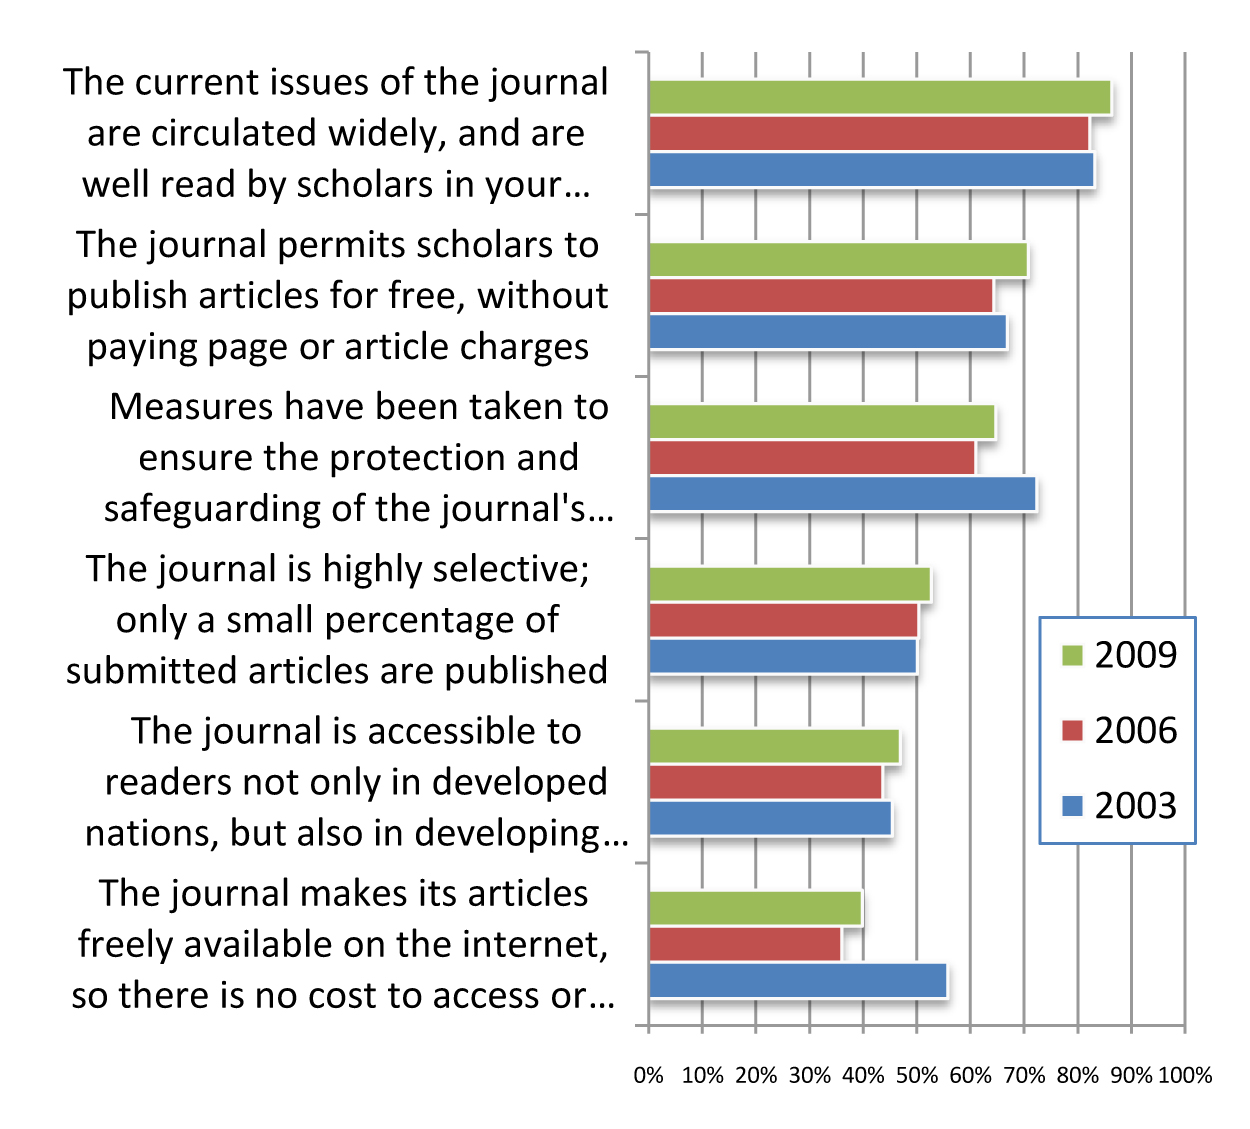 "Figure 23 from ITHAKA: ""Faculty Survey 2009: Key Strategic Insights for Libraries, Publishers, and Societies."" Roger C. Schonfeld (manager of research) and Ross Housewright (analyst). [Formerly http://www.ithaka.org/ithaka-s-r/research/faculty-surveys-2000-2009/faculty-survey-2009]."